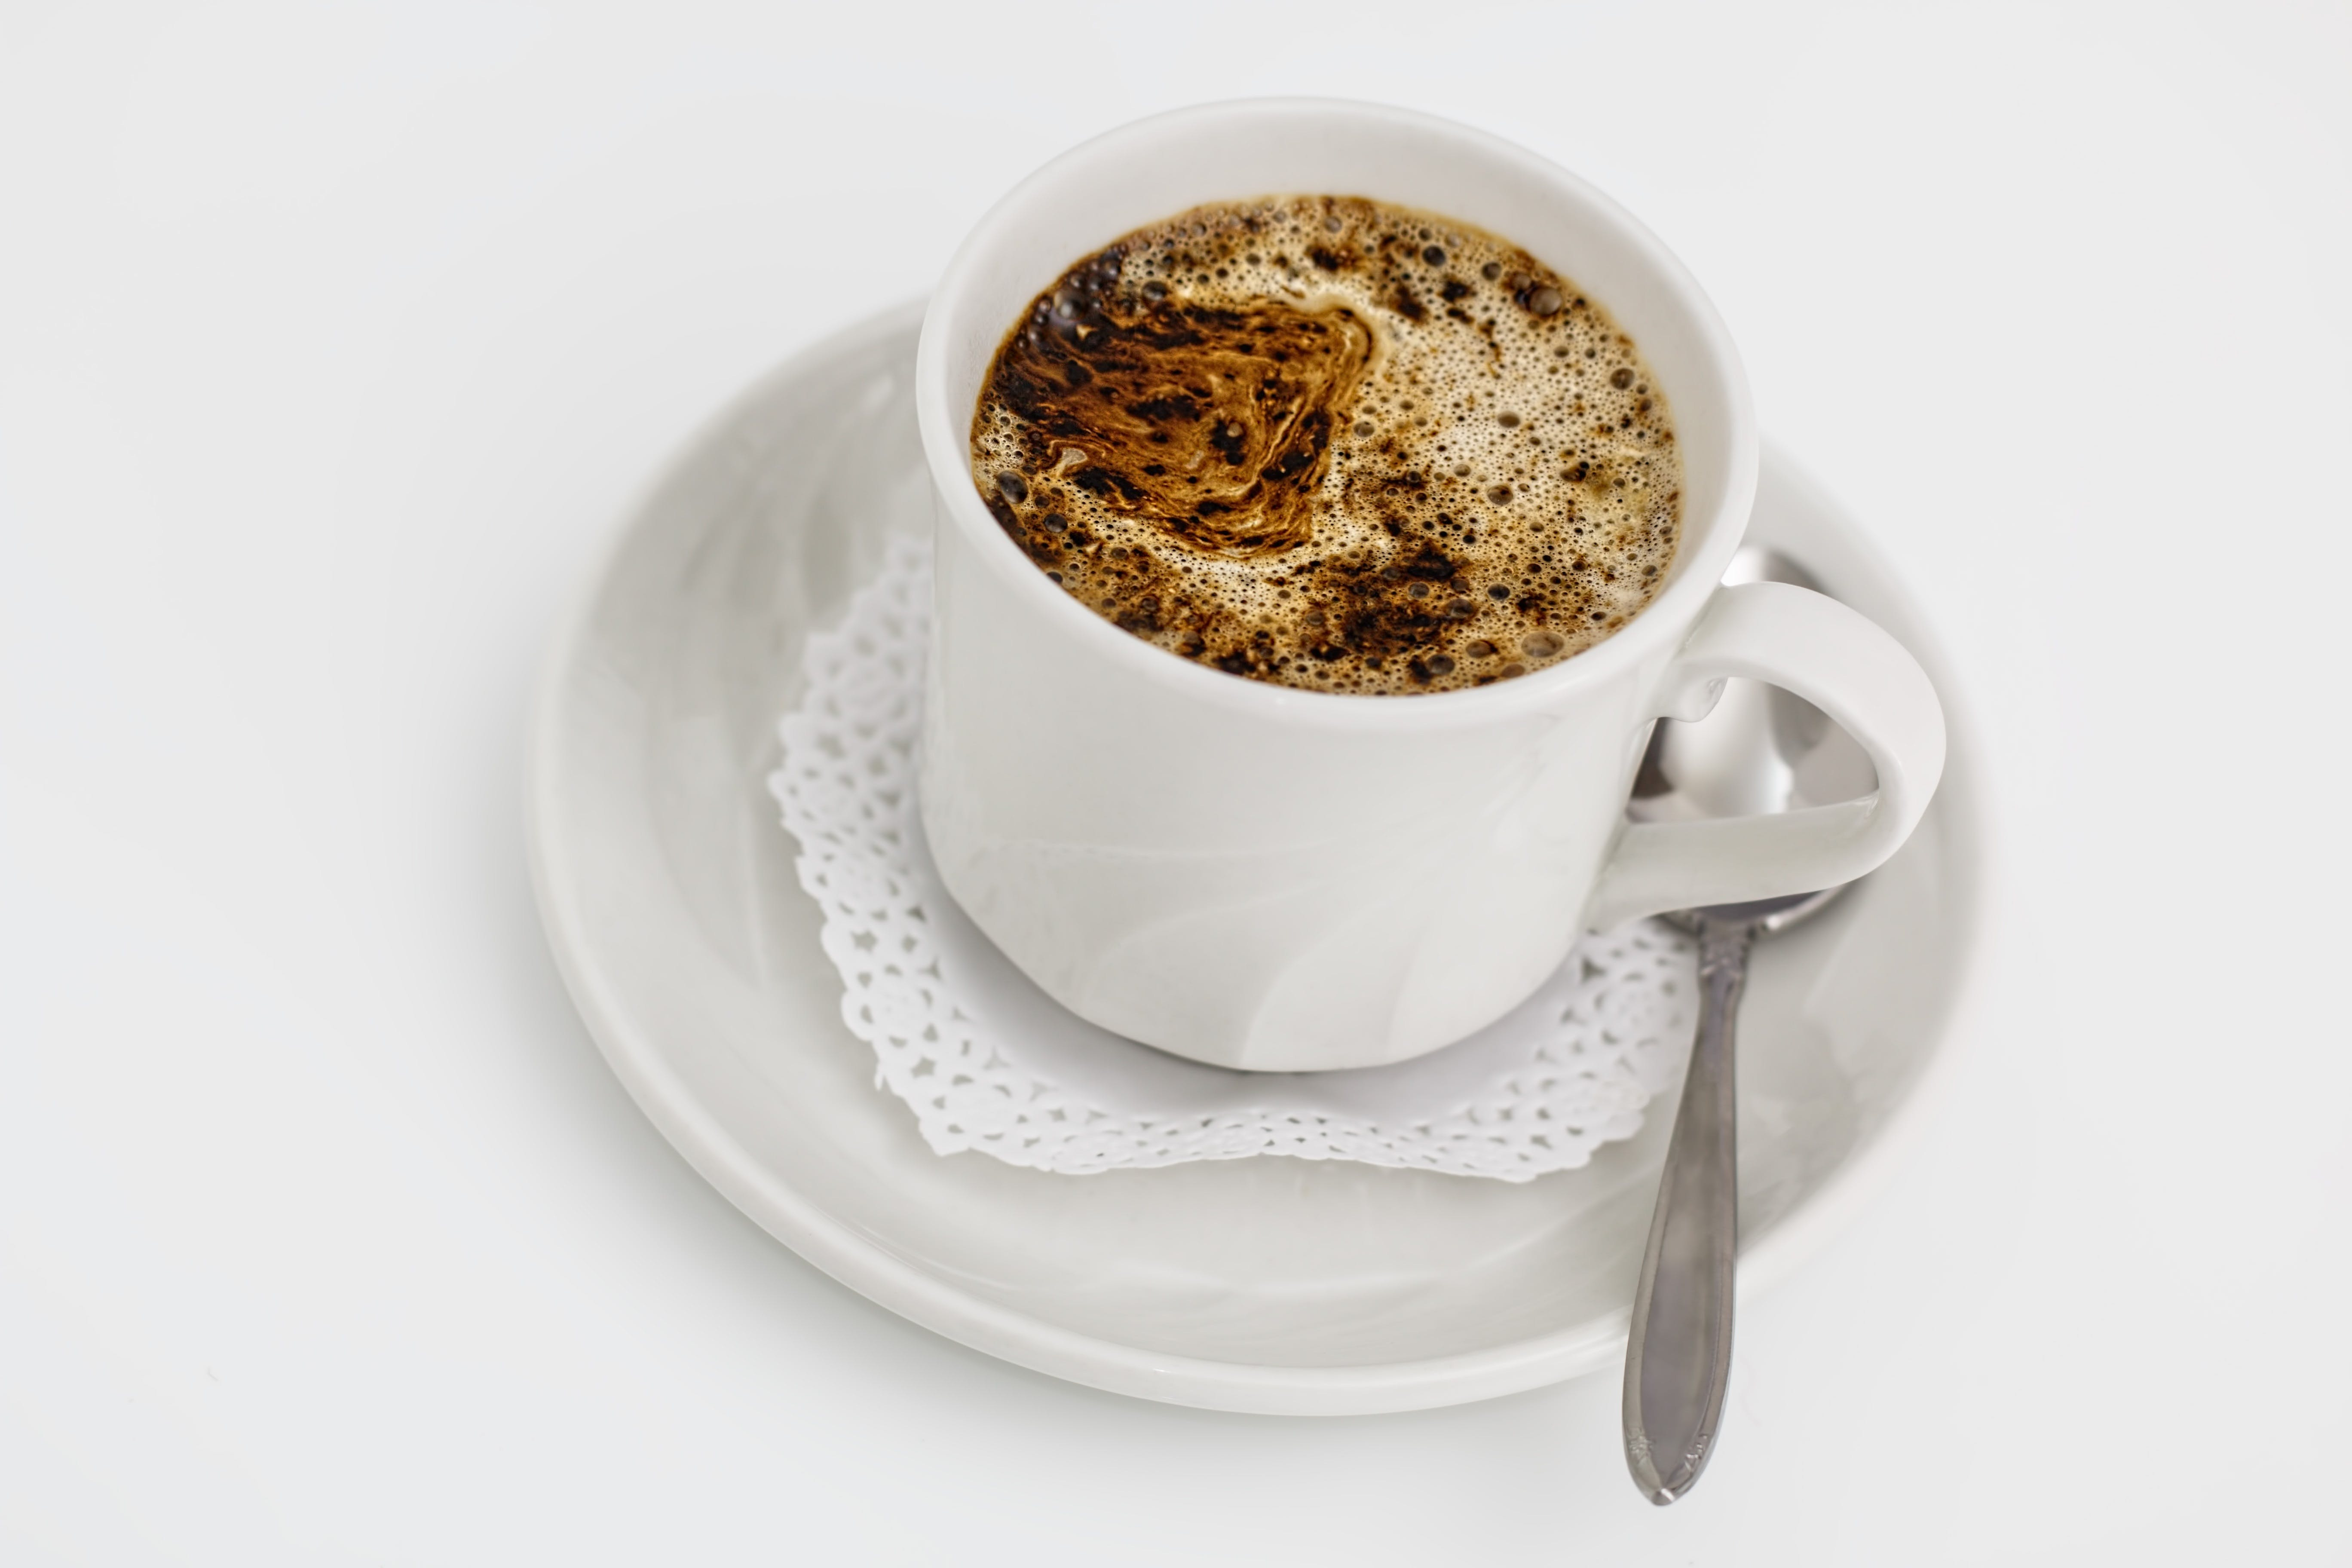 White Ceramic Cup With Coffee